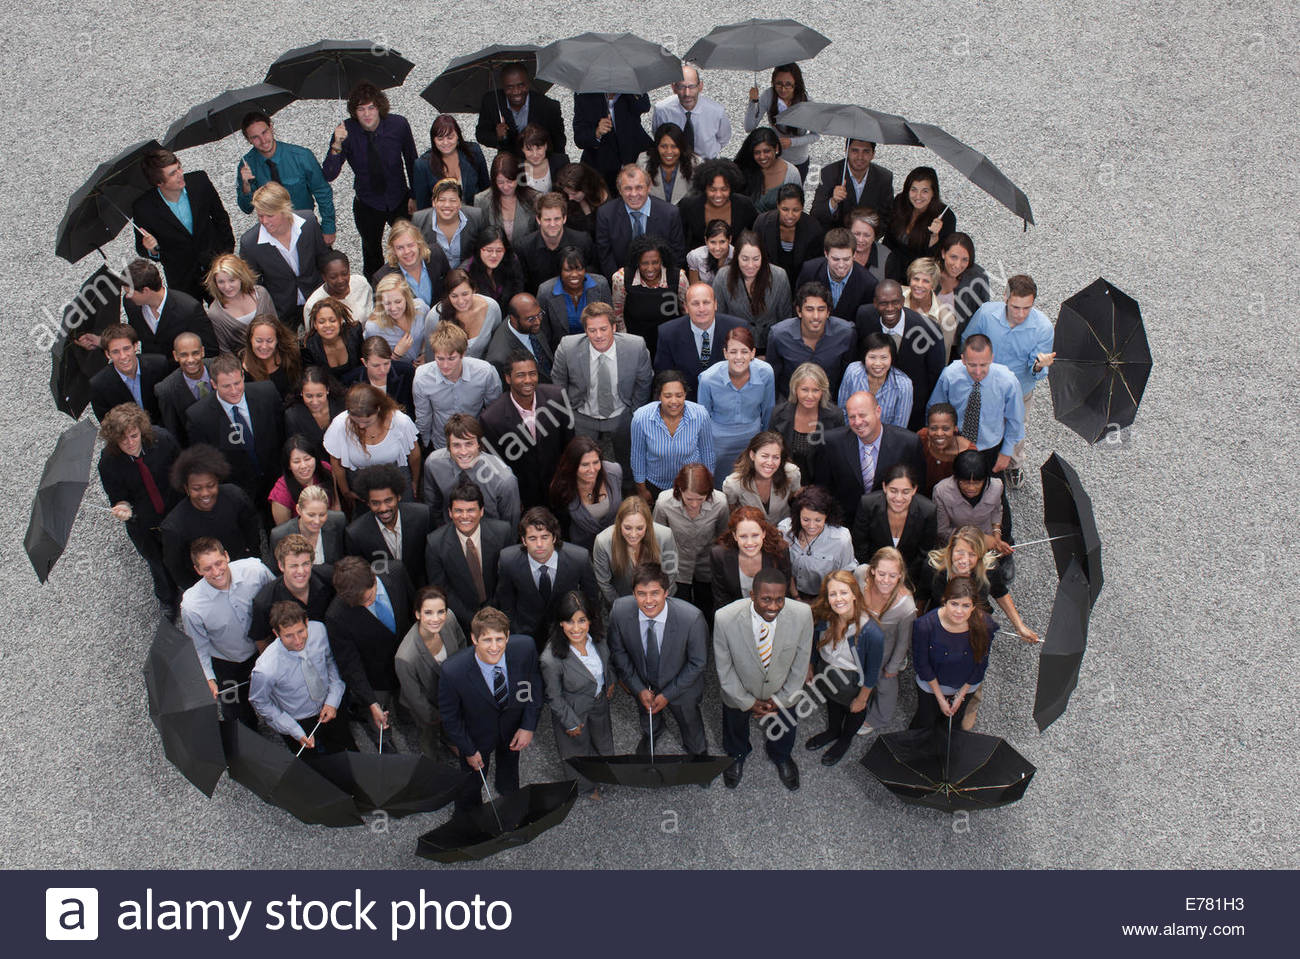 Business people with umbrellas - Stock Image